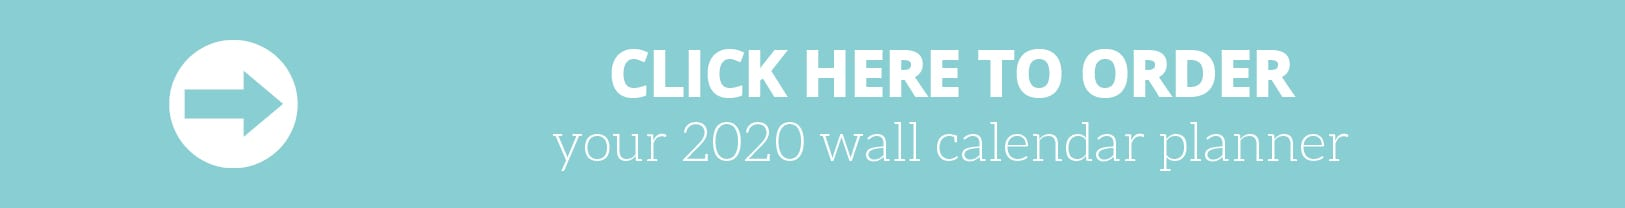 Order 2020 Wall Calendar planner by The Organised Housewife